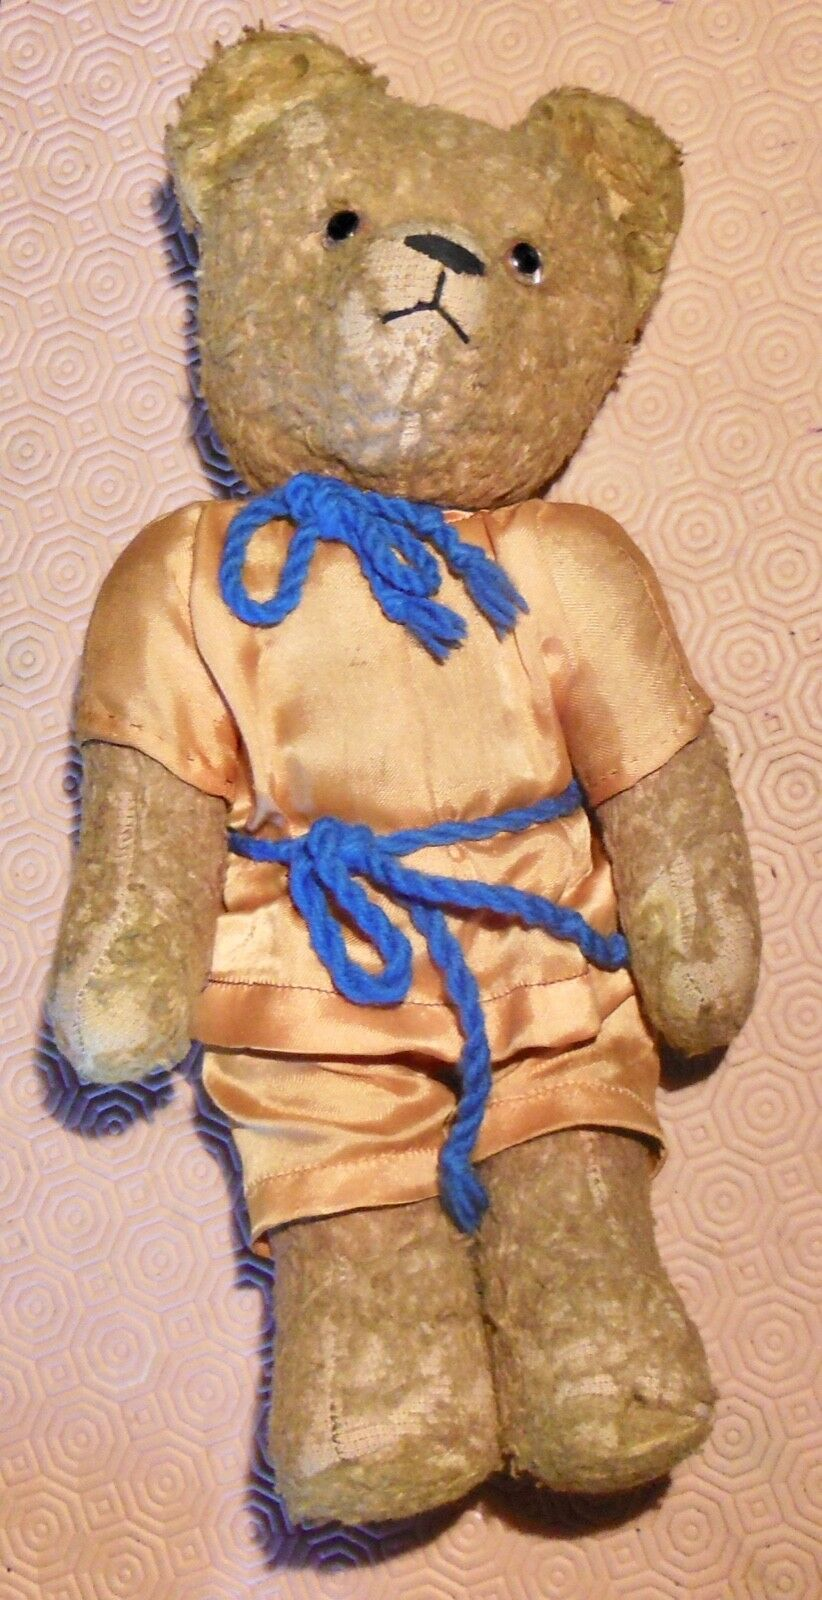 OURS ANCIEN CORPS en PAILLE 1900   1930 ,TEDDY BEAR ETAT D'USAGE VOIR PHOTOS